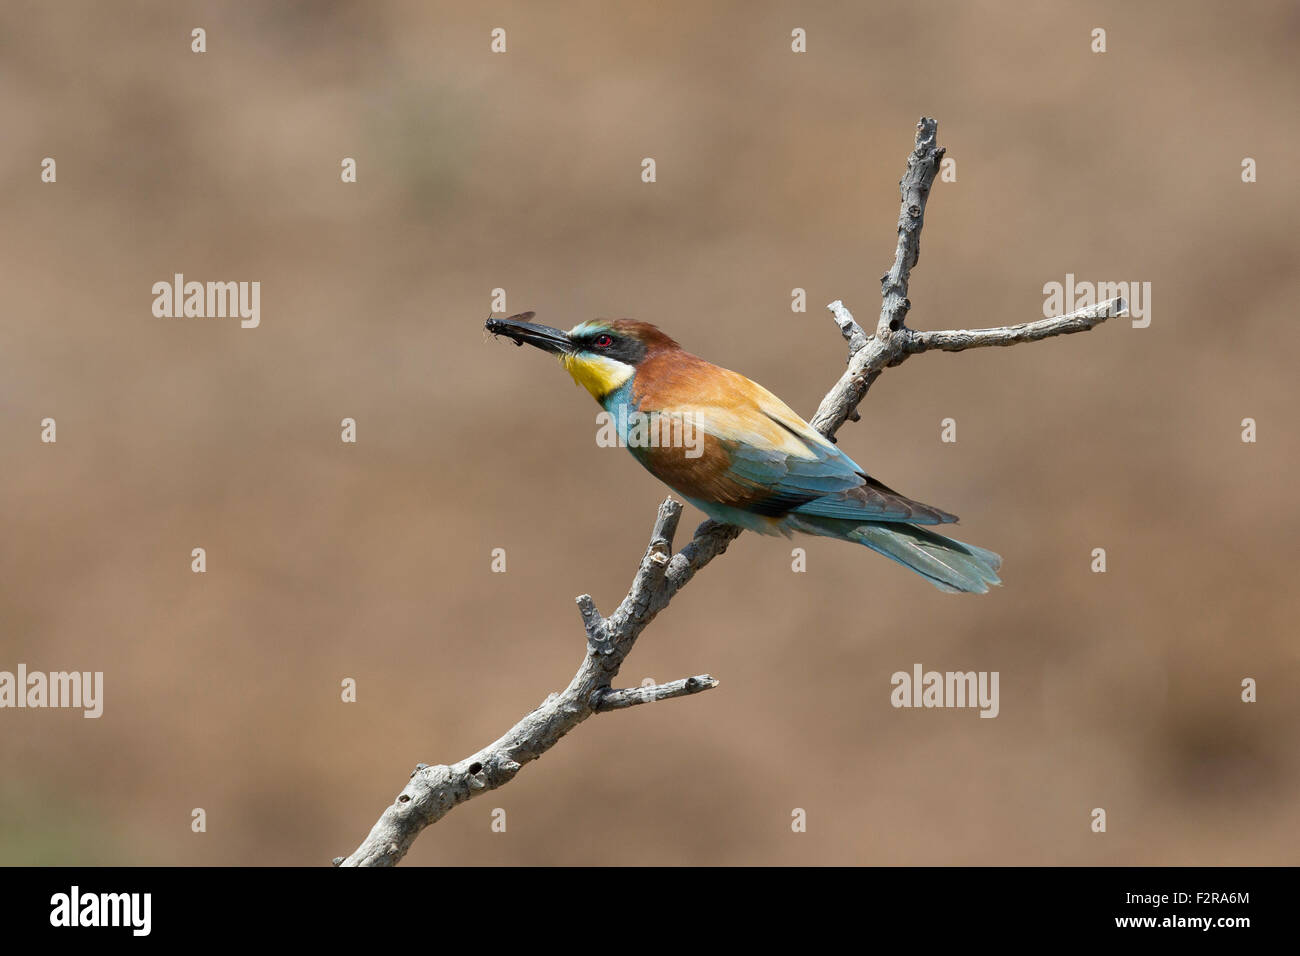 European Bee-eater with insect prey Stock Photo